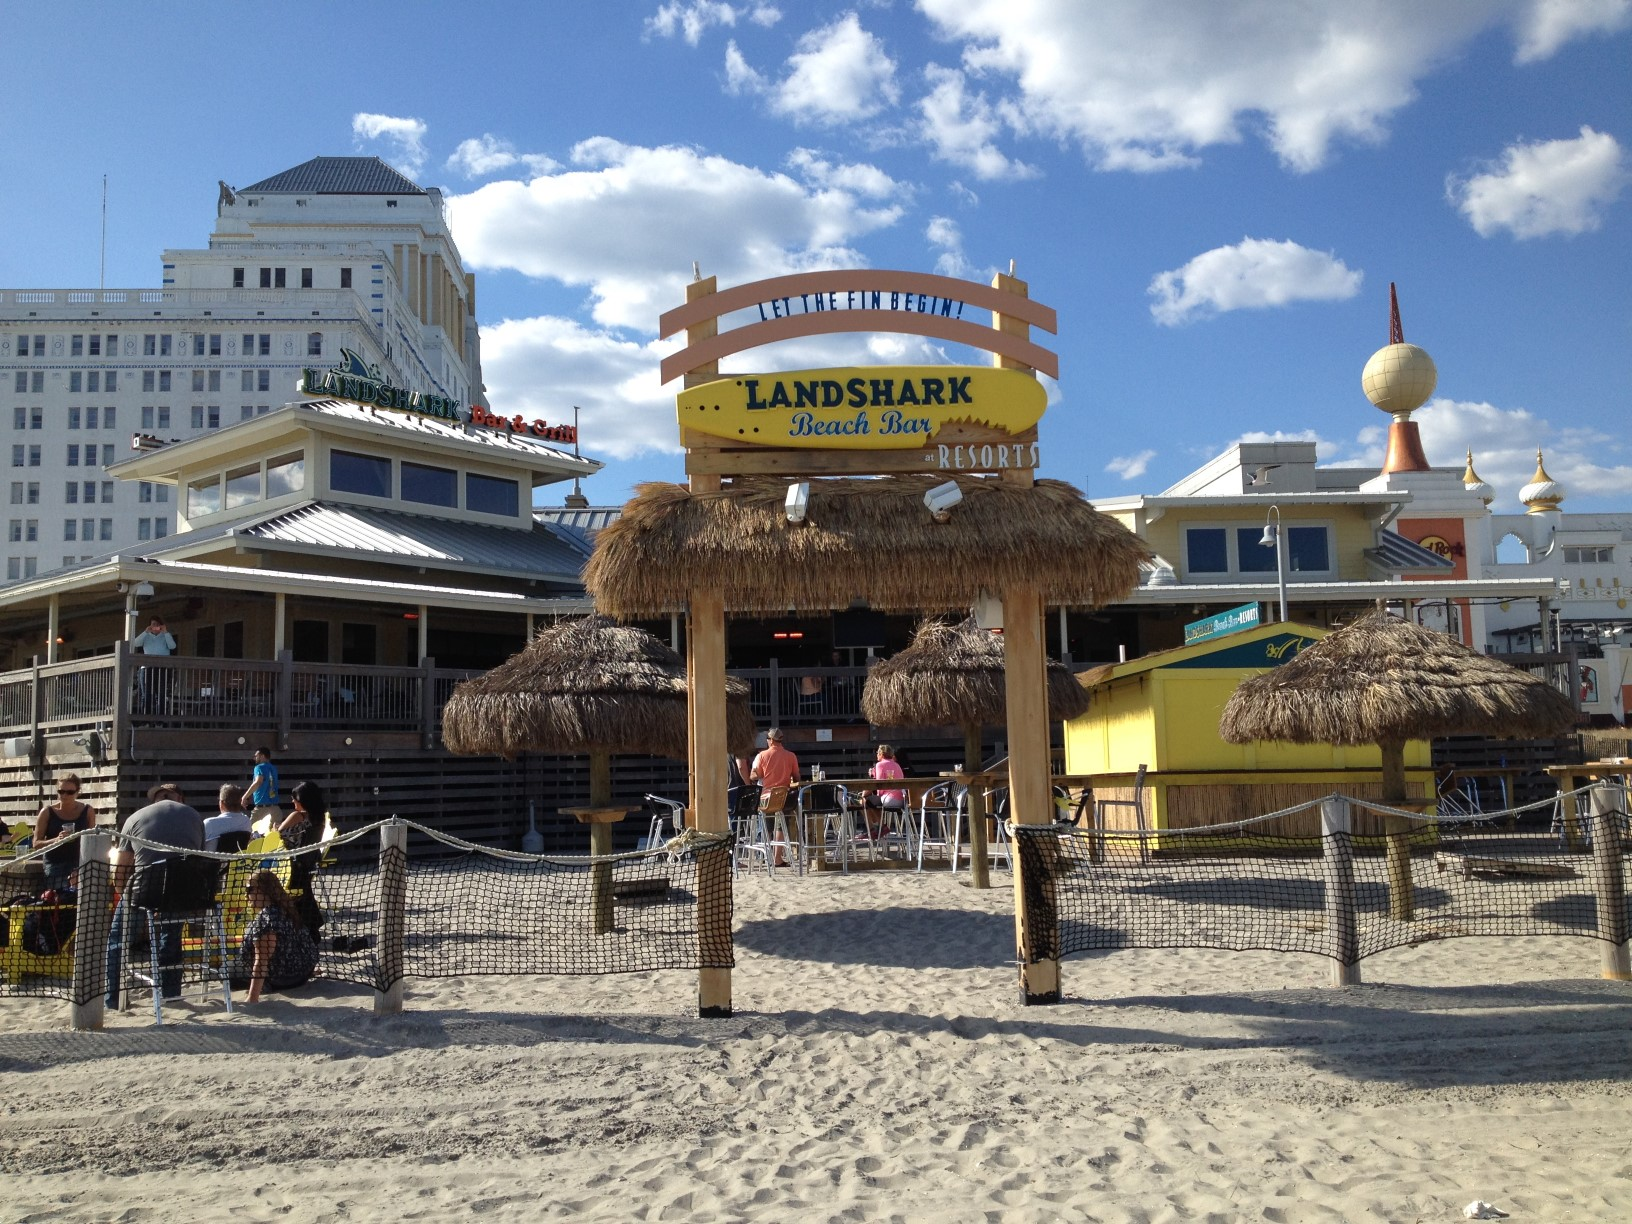 A view from the beach of Landshark Bar and Grill with Resorts Hotel